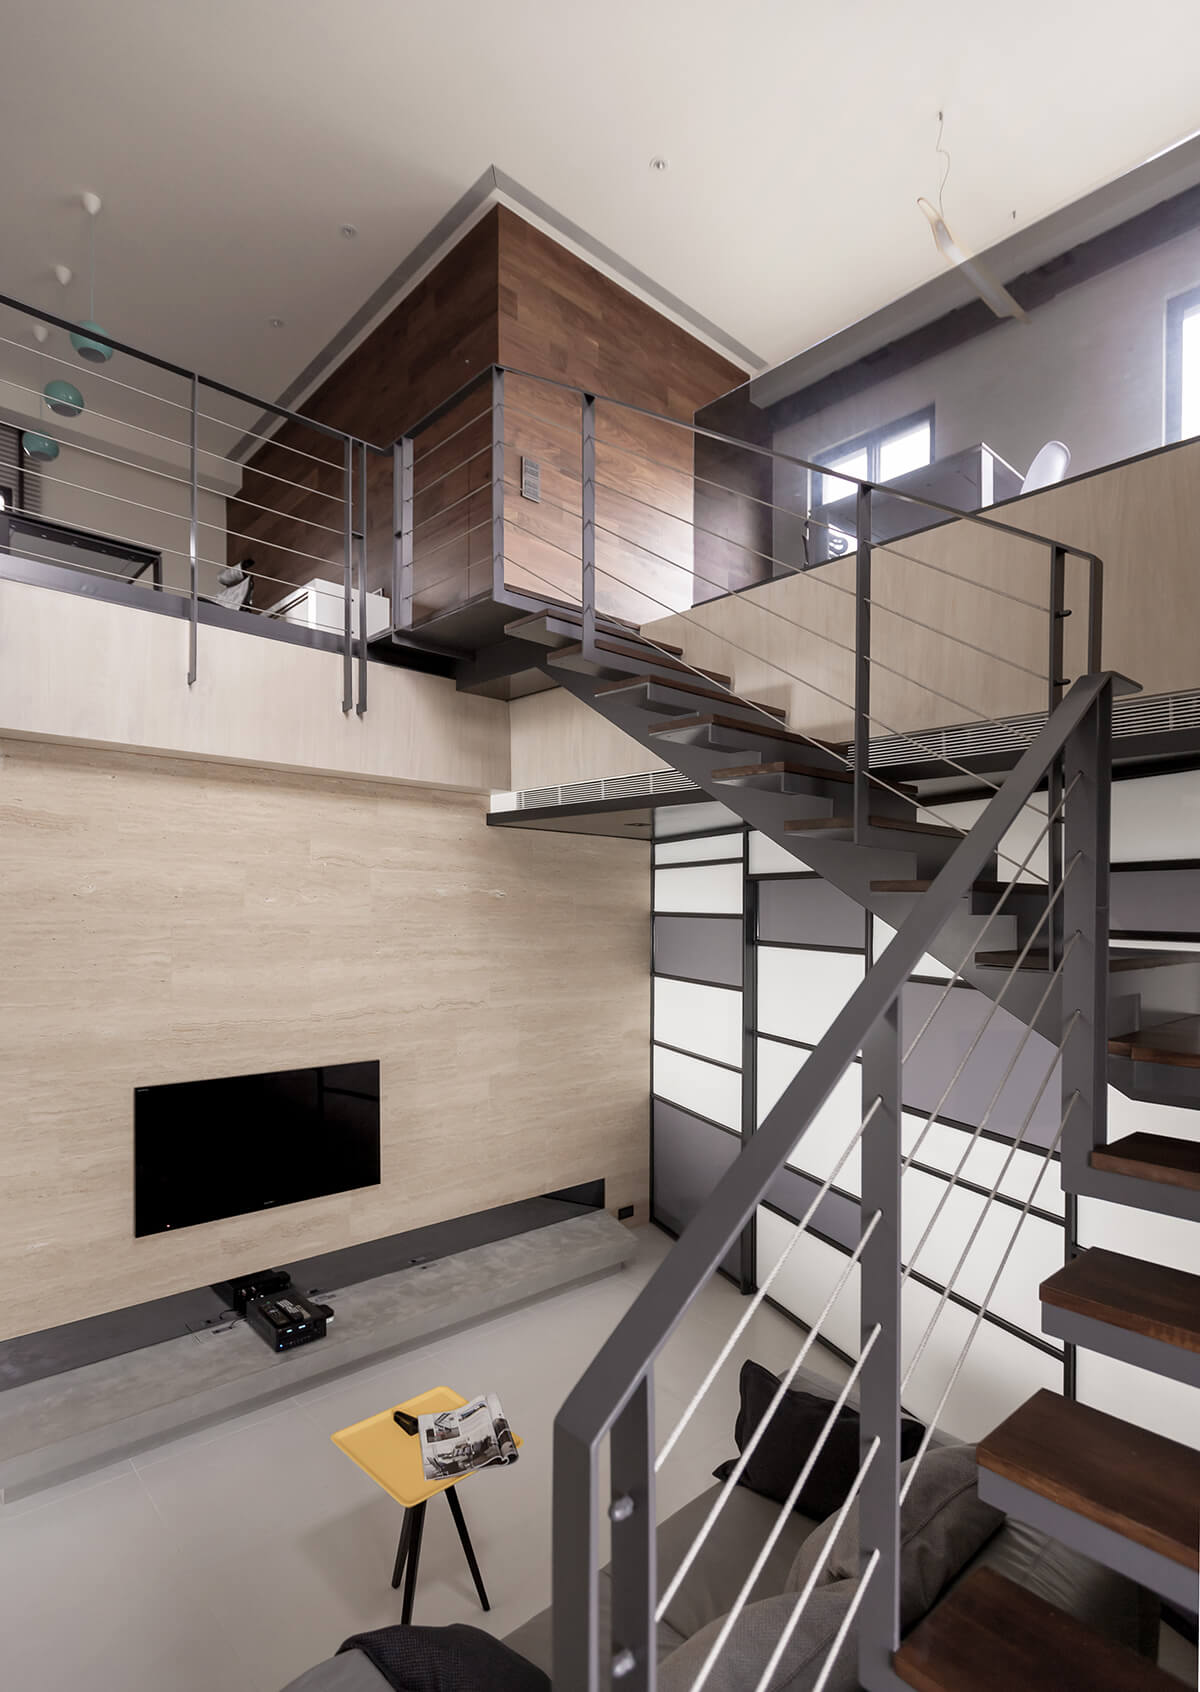 The central, high-ceiling part of the home features an expansive vertical layering of materials, with stone, marble, wood, and metal combining for a shifting, detailed visual presence.